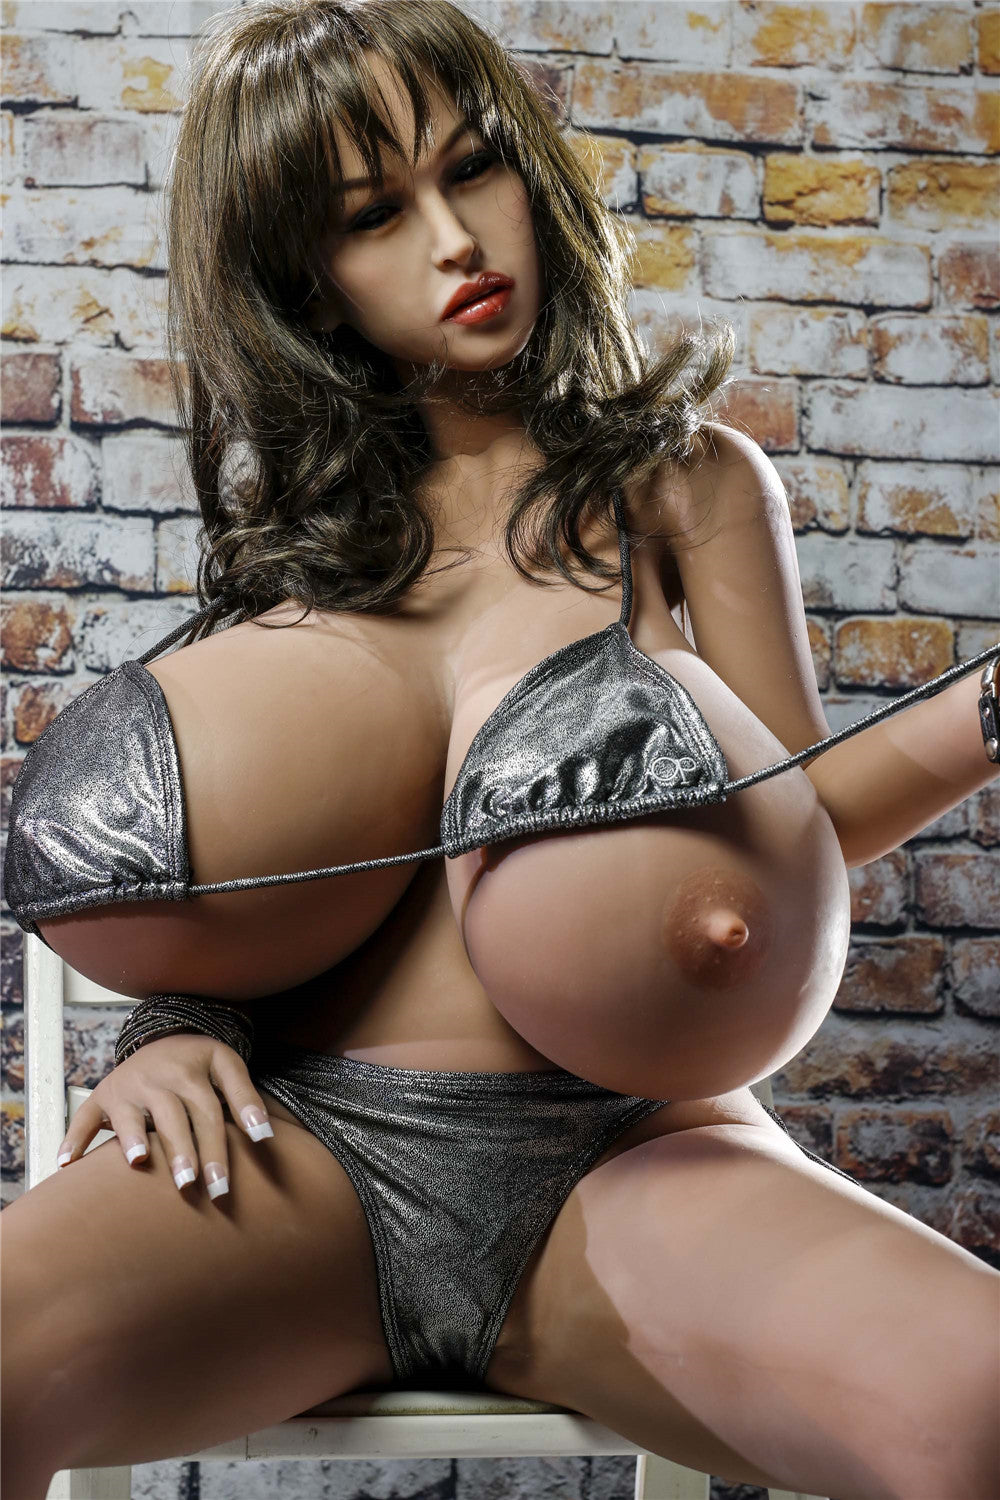 Mega Boobs Sex Doll - Tina